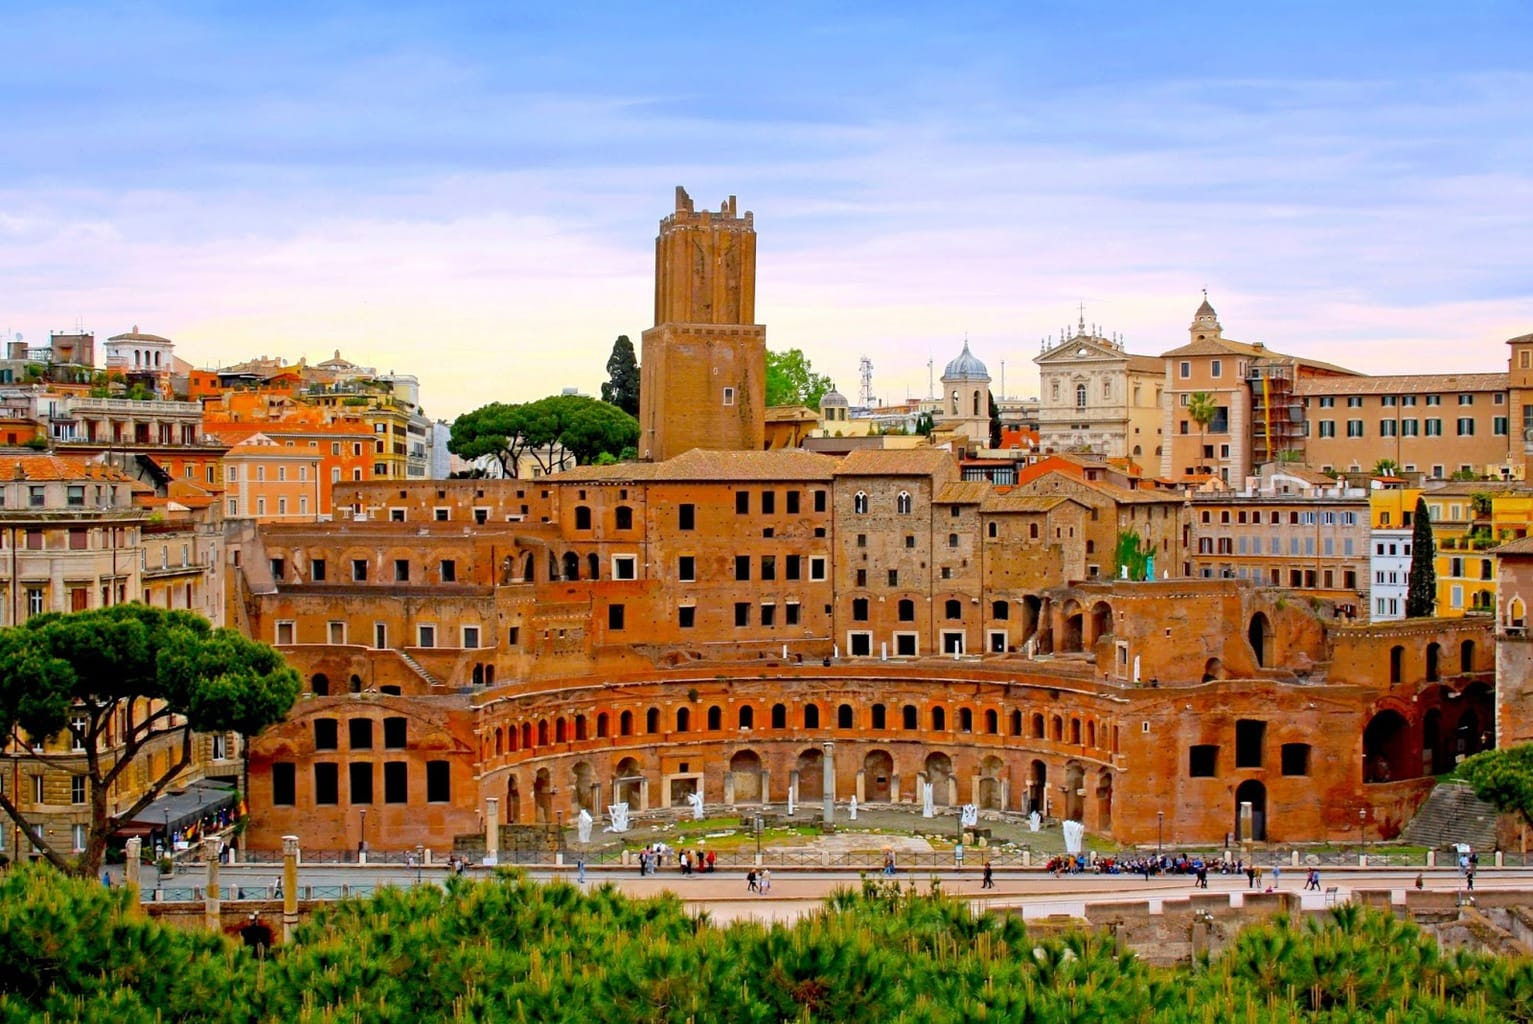 Trajan's Market, the world's first shopping mall